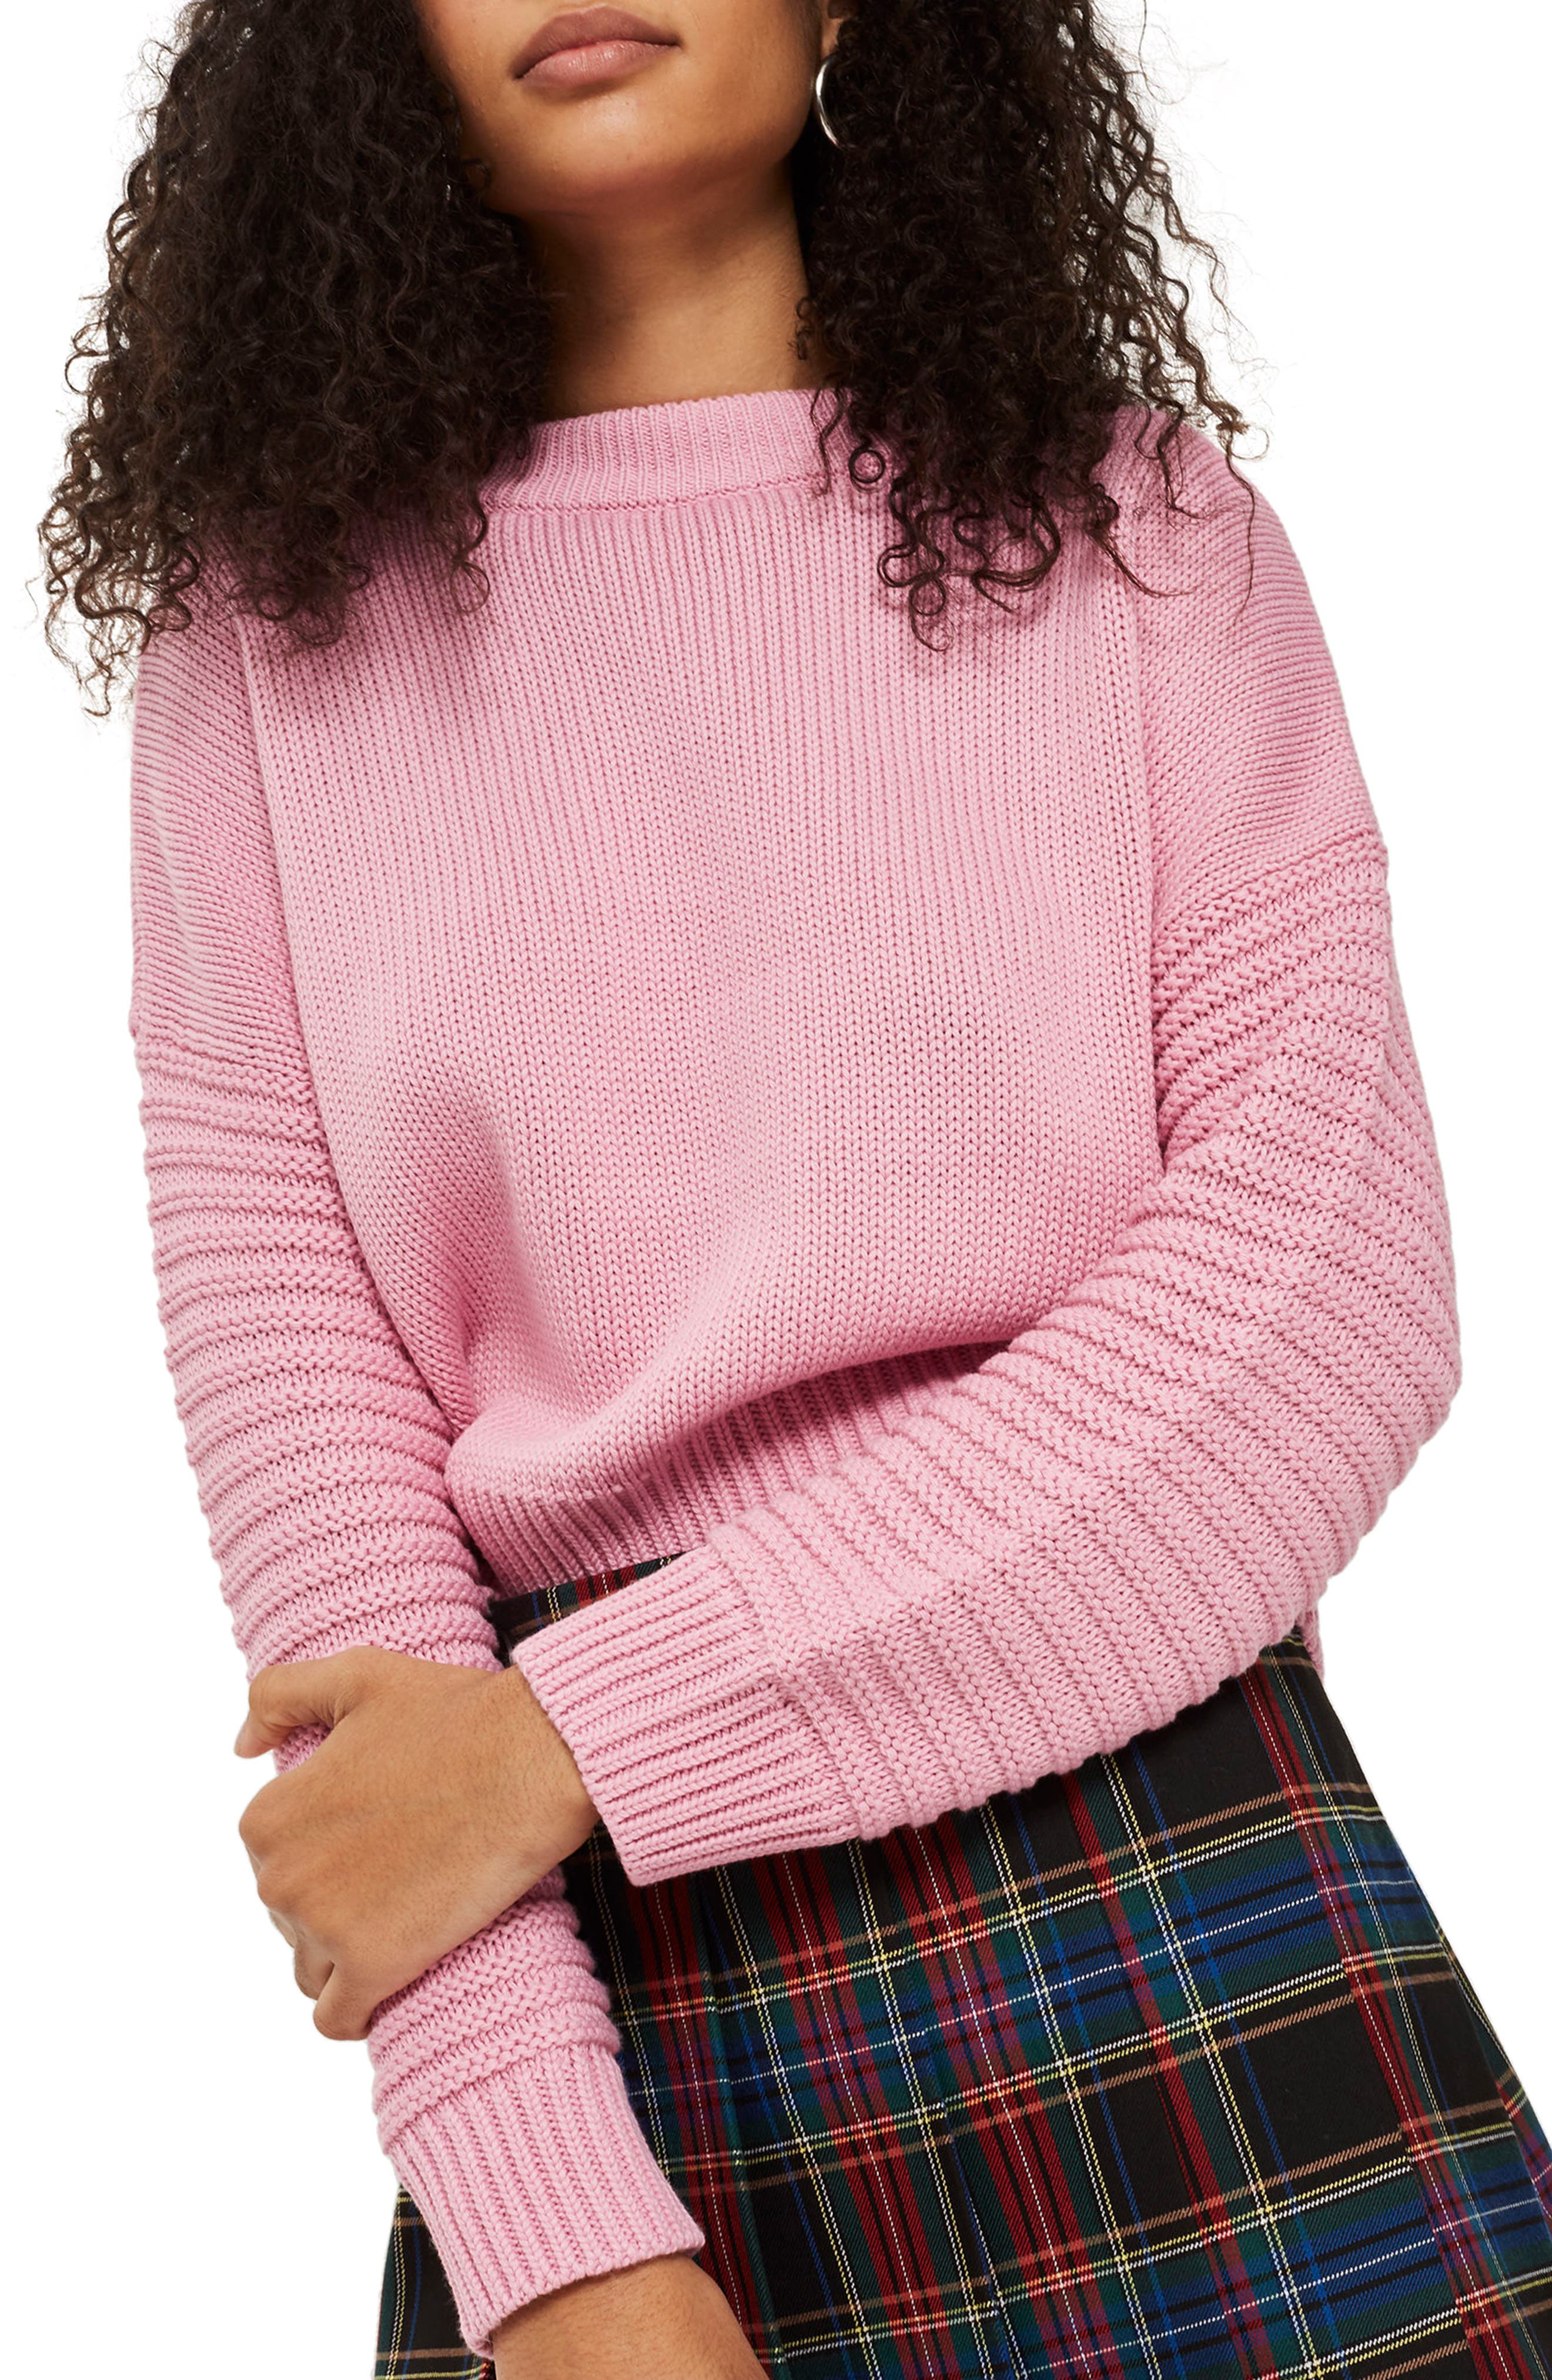 Stitch Detail Sleeve Sweater,                             Main thumbnail 1, color,                             Pink